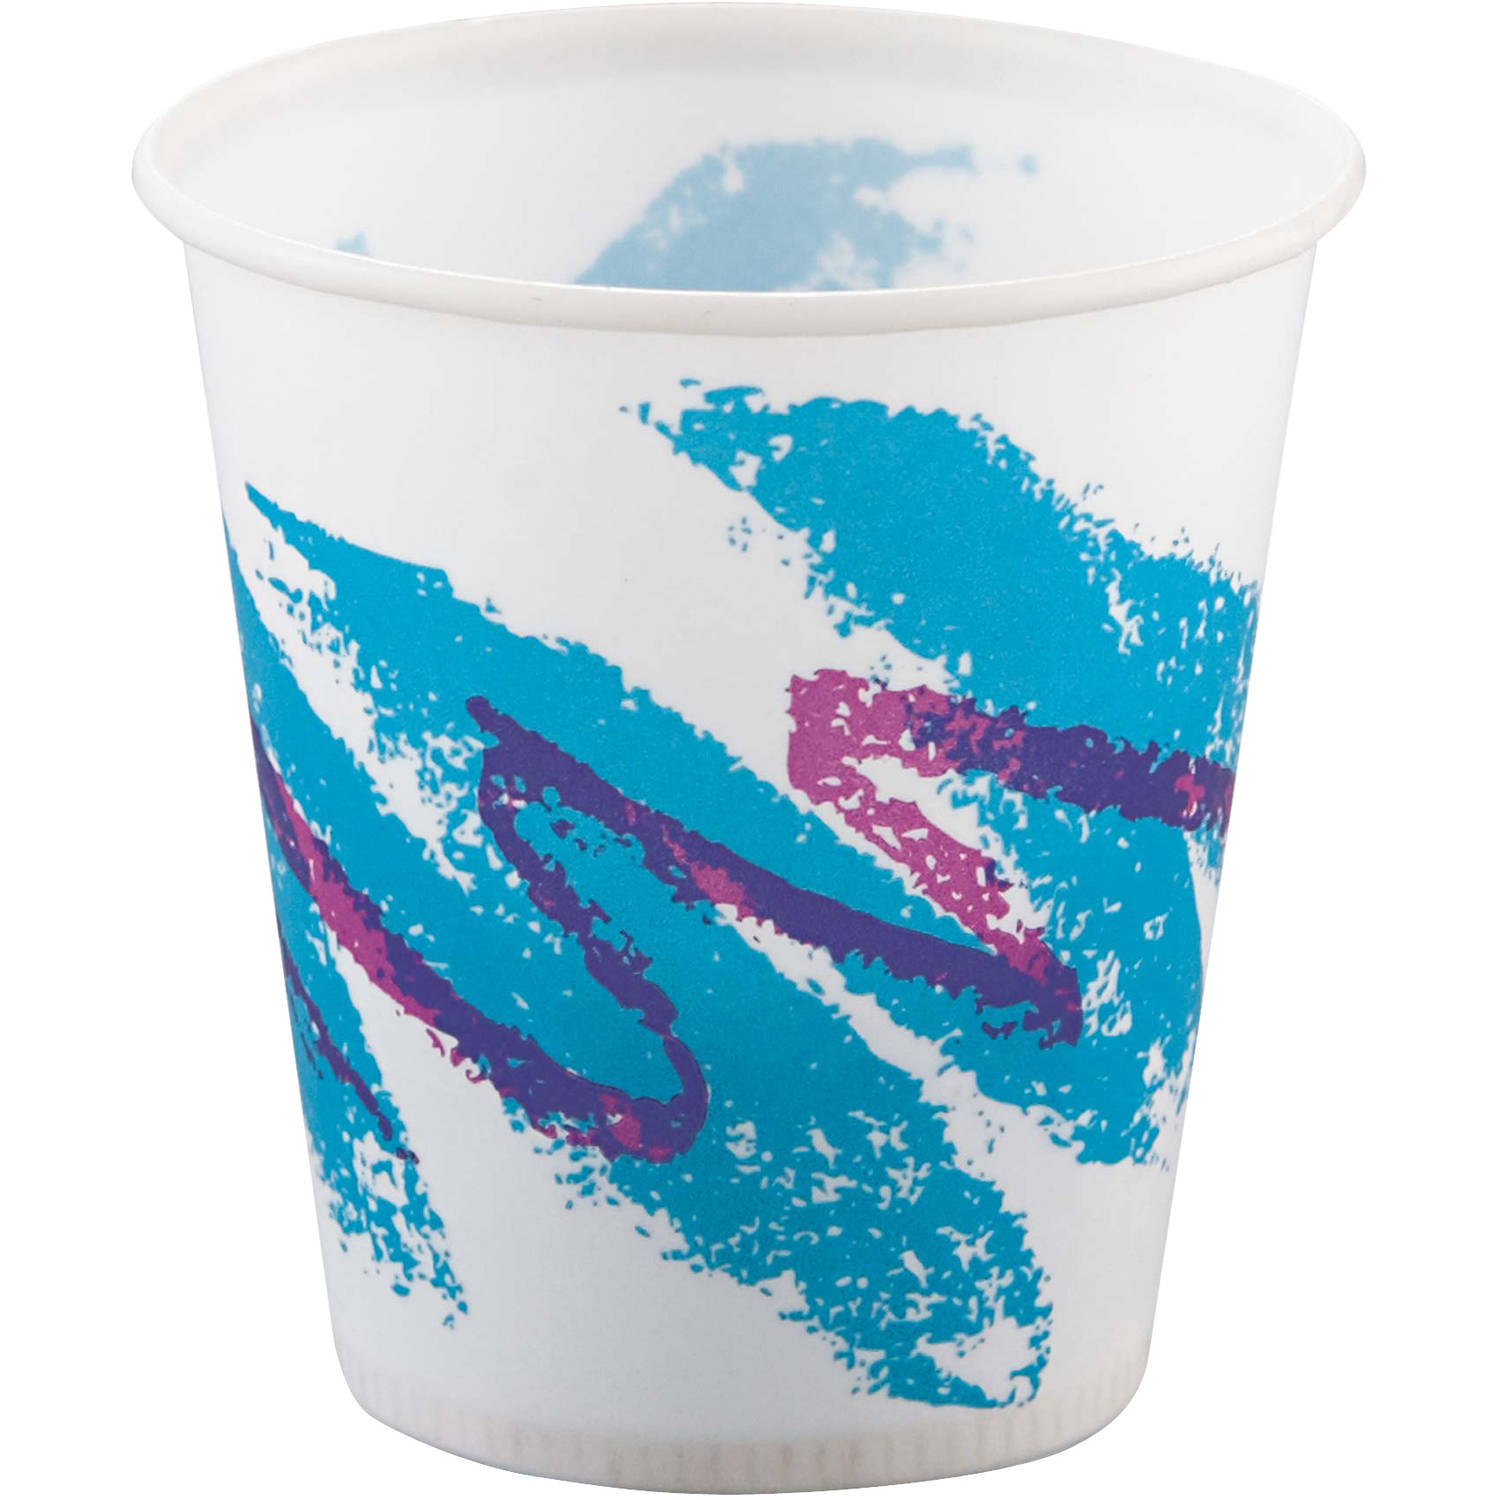 SOLO Cup Company Jazz 3 Oz Waxed Paper Cold Cups, 100 count, (Pack of 50)